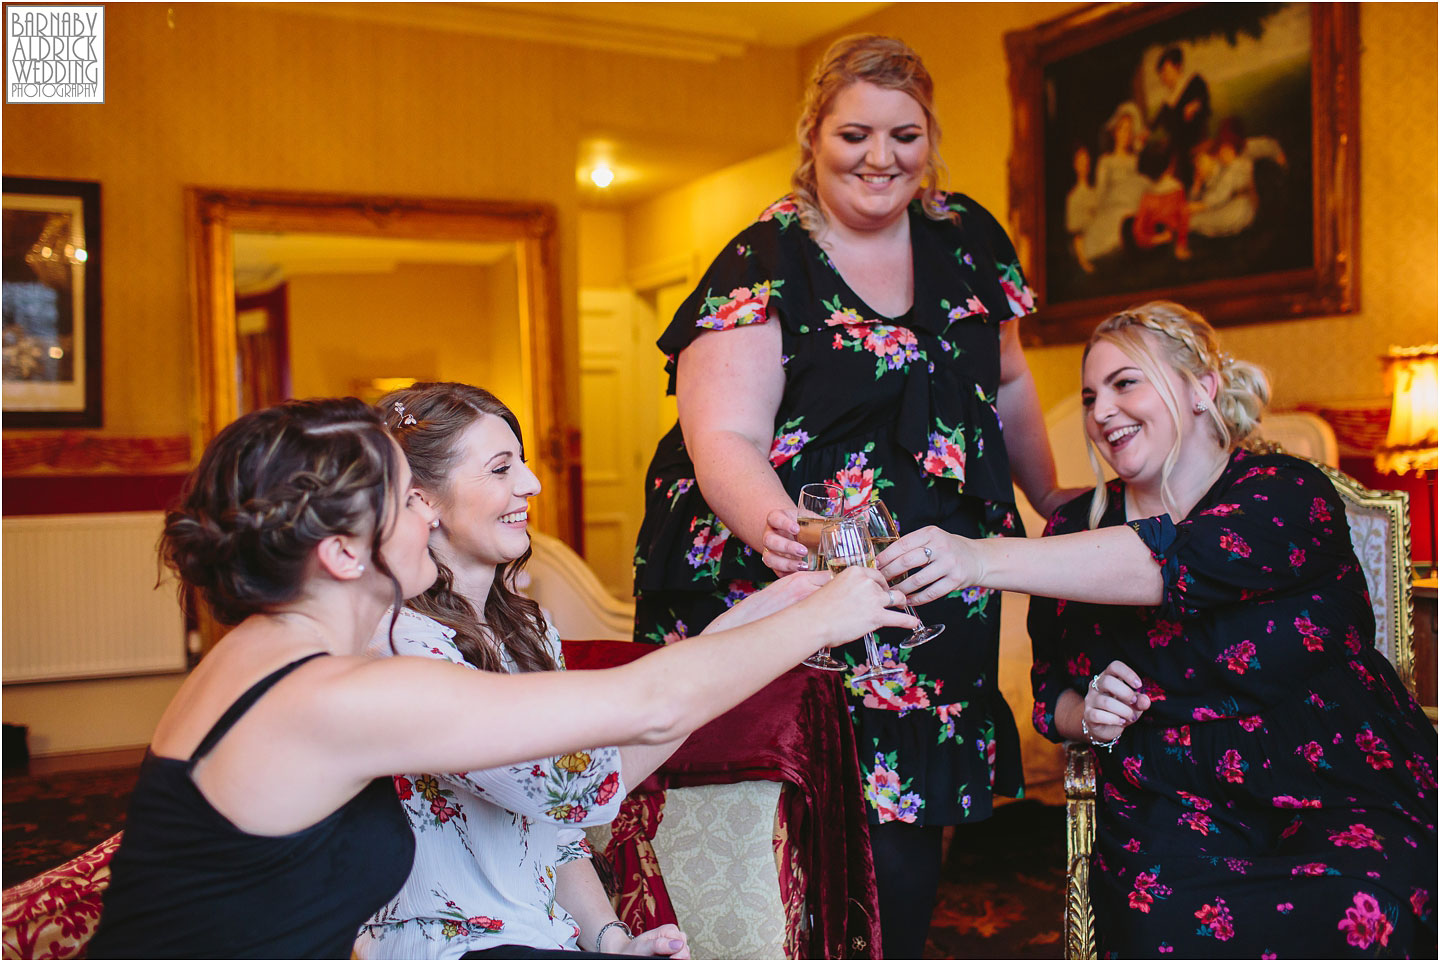 Champagne toast photo at a Crow Hill wedding in Marsden, West Yorkshire Winter Wedding, Exclusive Country House wedding venue, Yorkshire Wedding Photographer Barnaby Aldrick